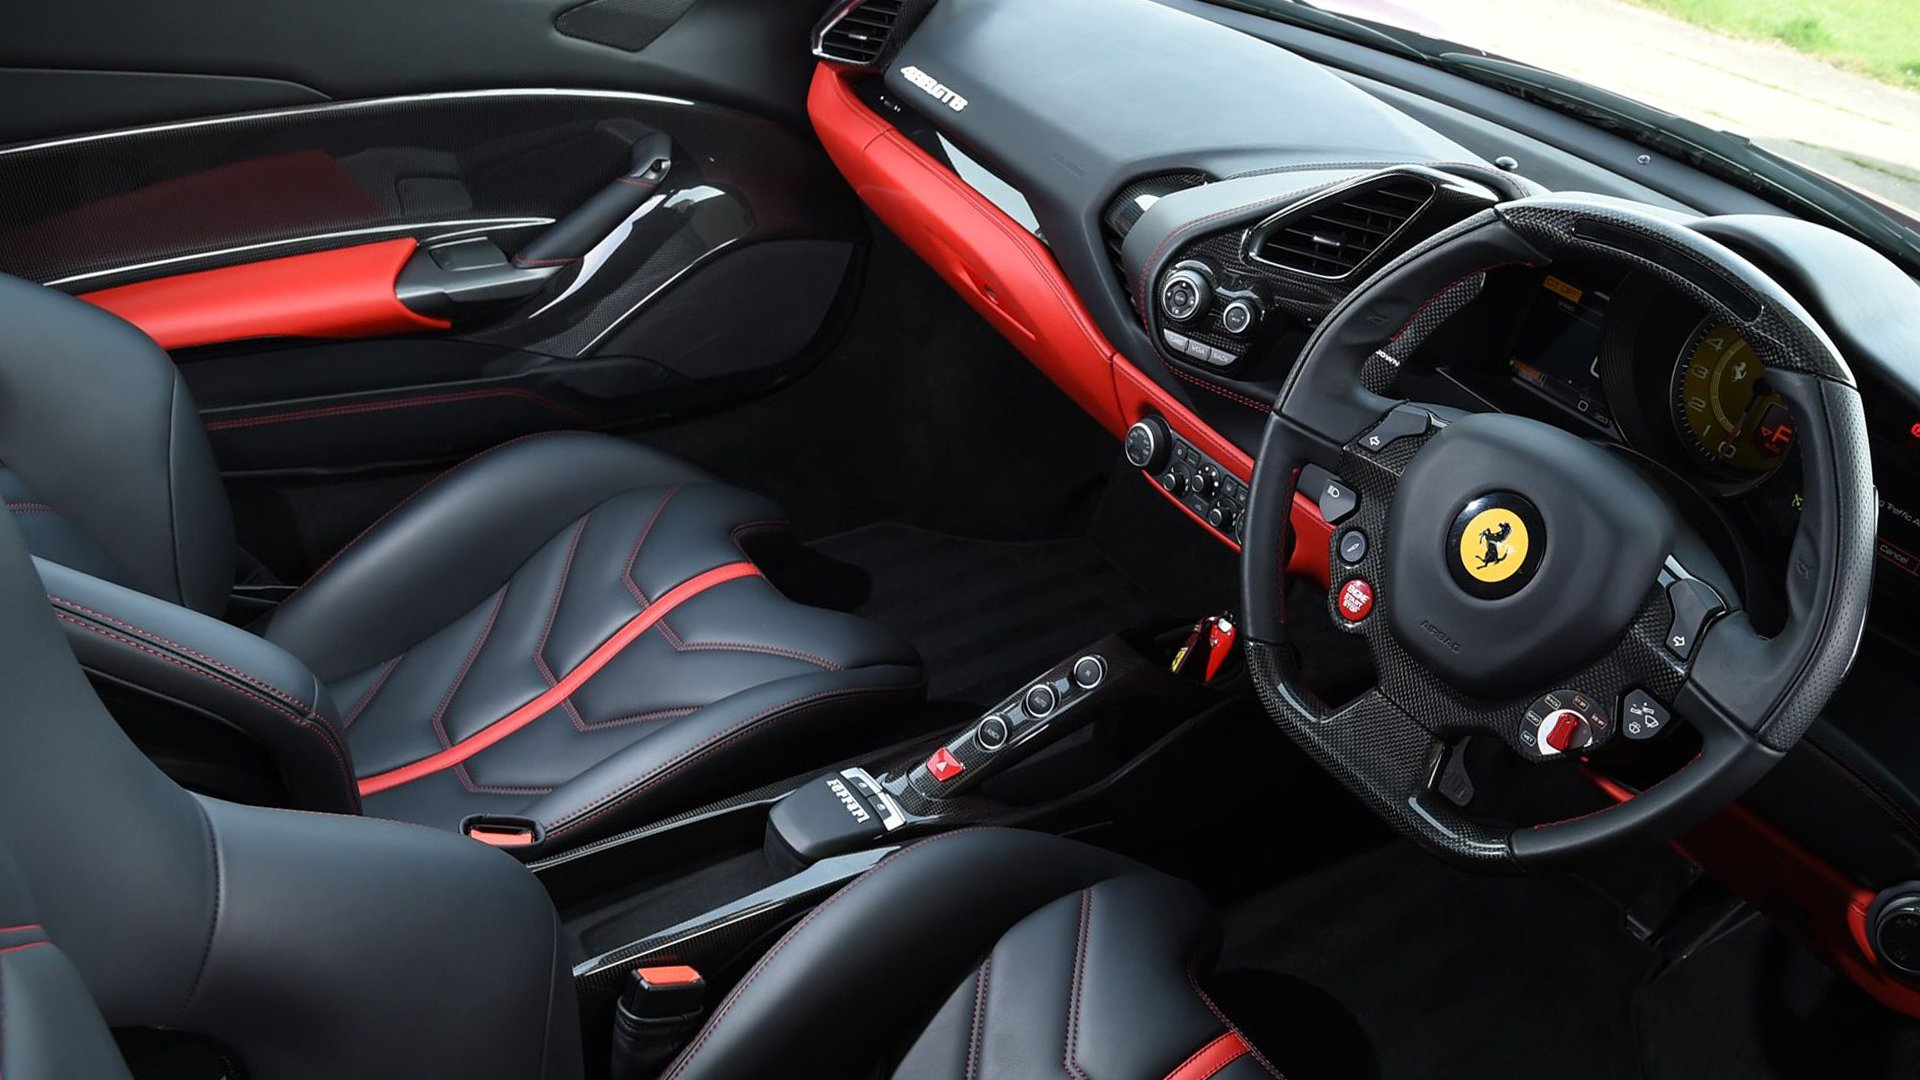 Interior Design Ferrari 488 GTB HD